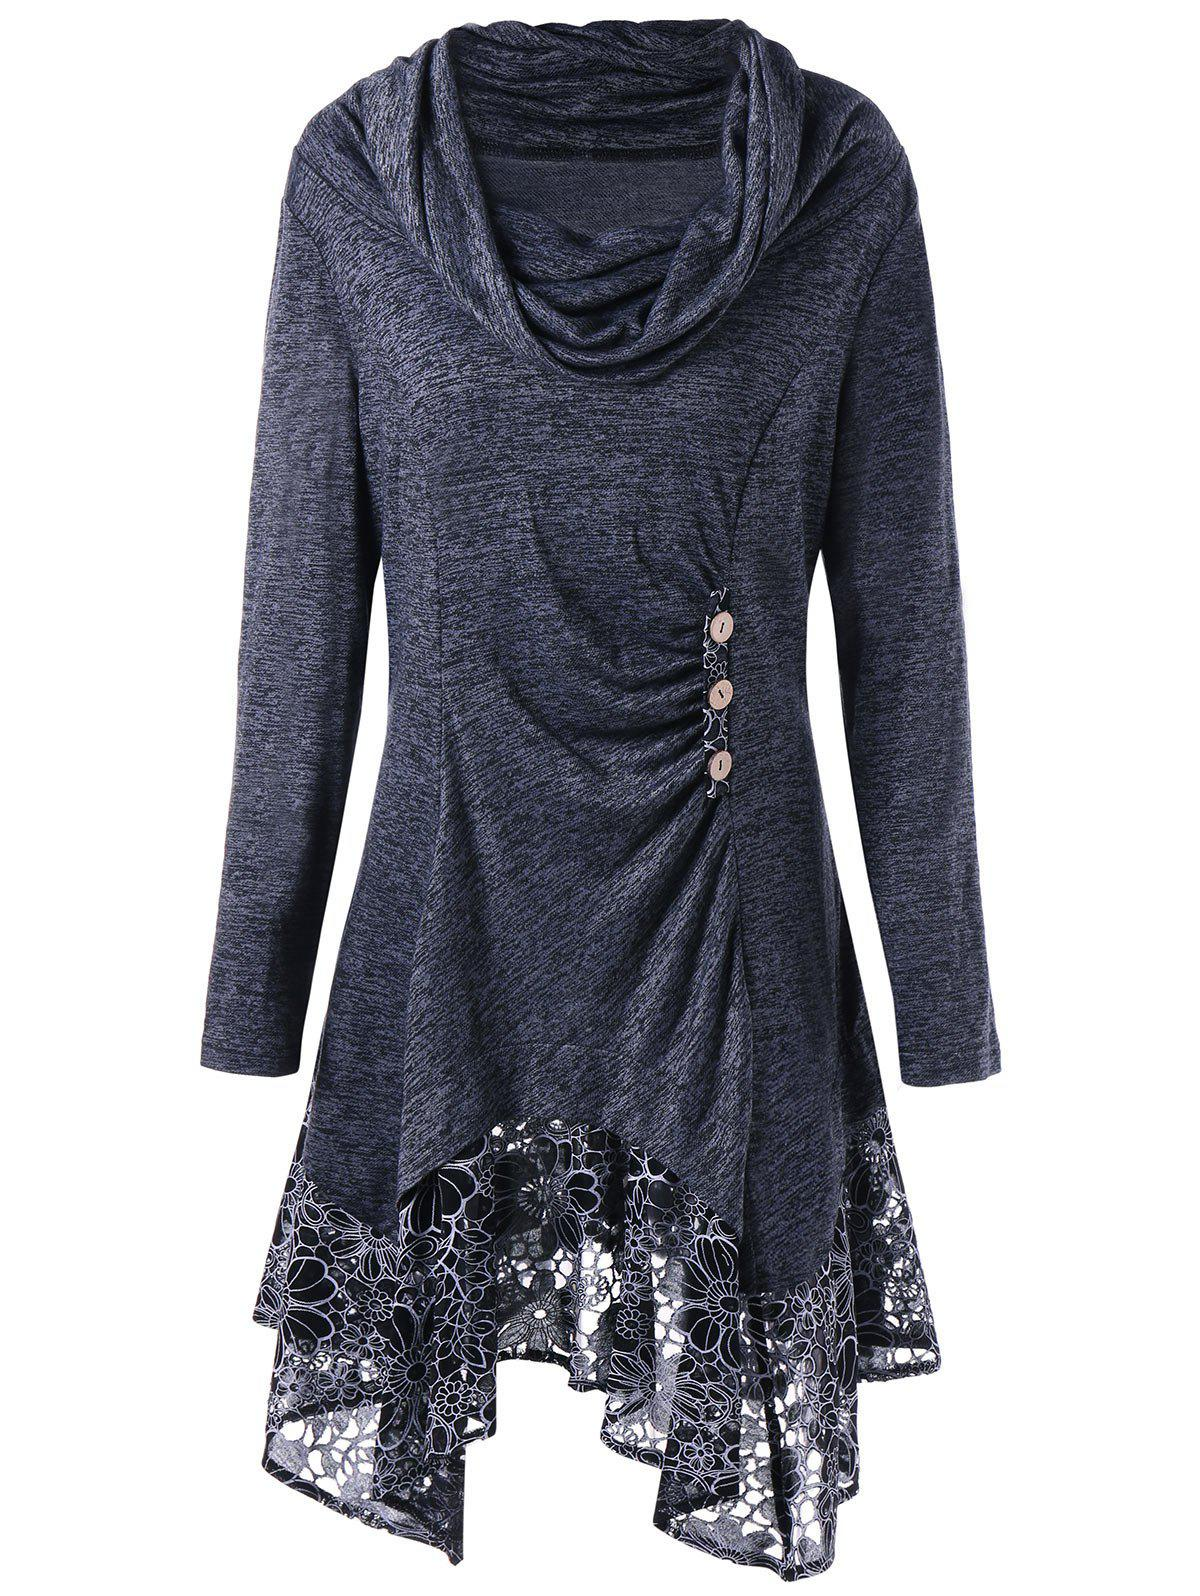 Plus Size Floral Cowl Neck Longline TopWOMEN<br><br>Size: 3XL; Color: DEEP GRAY; Material: Rayon; Shirt Length: Long; Sleeve Length: Full; Collar: Cowl Neck; Style: Casual; Season: Fall,Spring; Embellishment: Button; Pattern Type: Floral; Weight: 0.4700kg; Package Contents: 1 x Top;